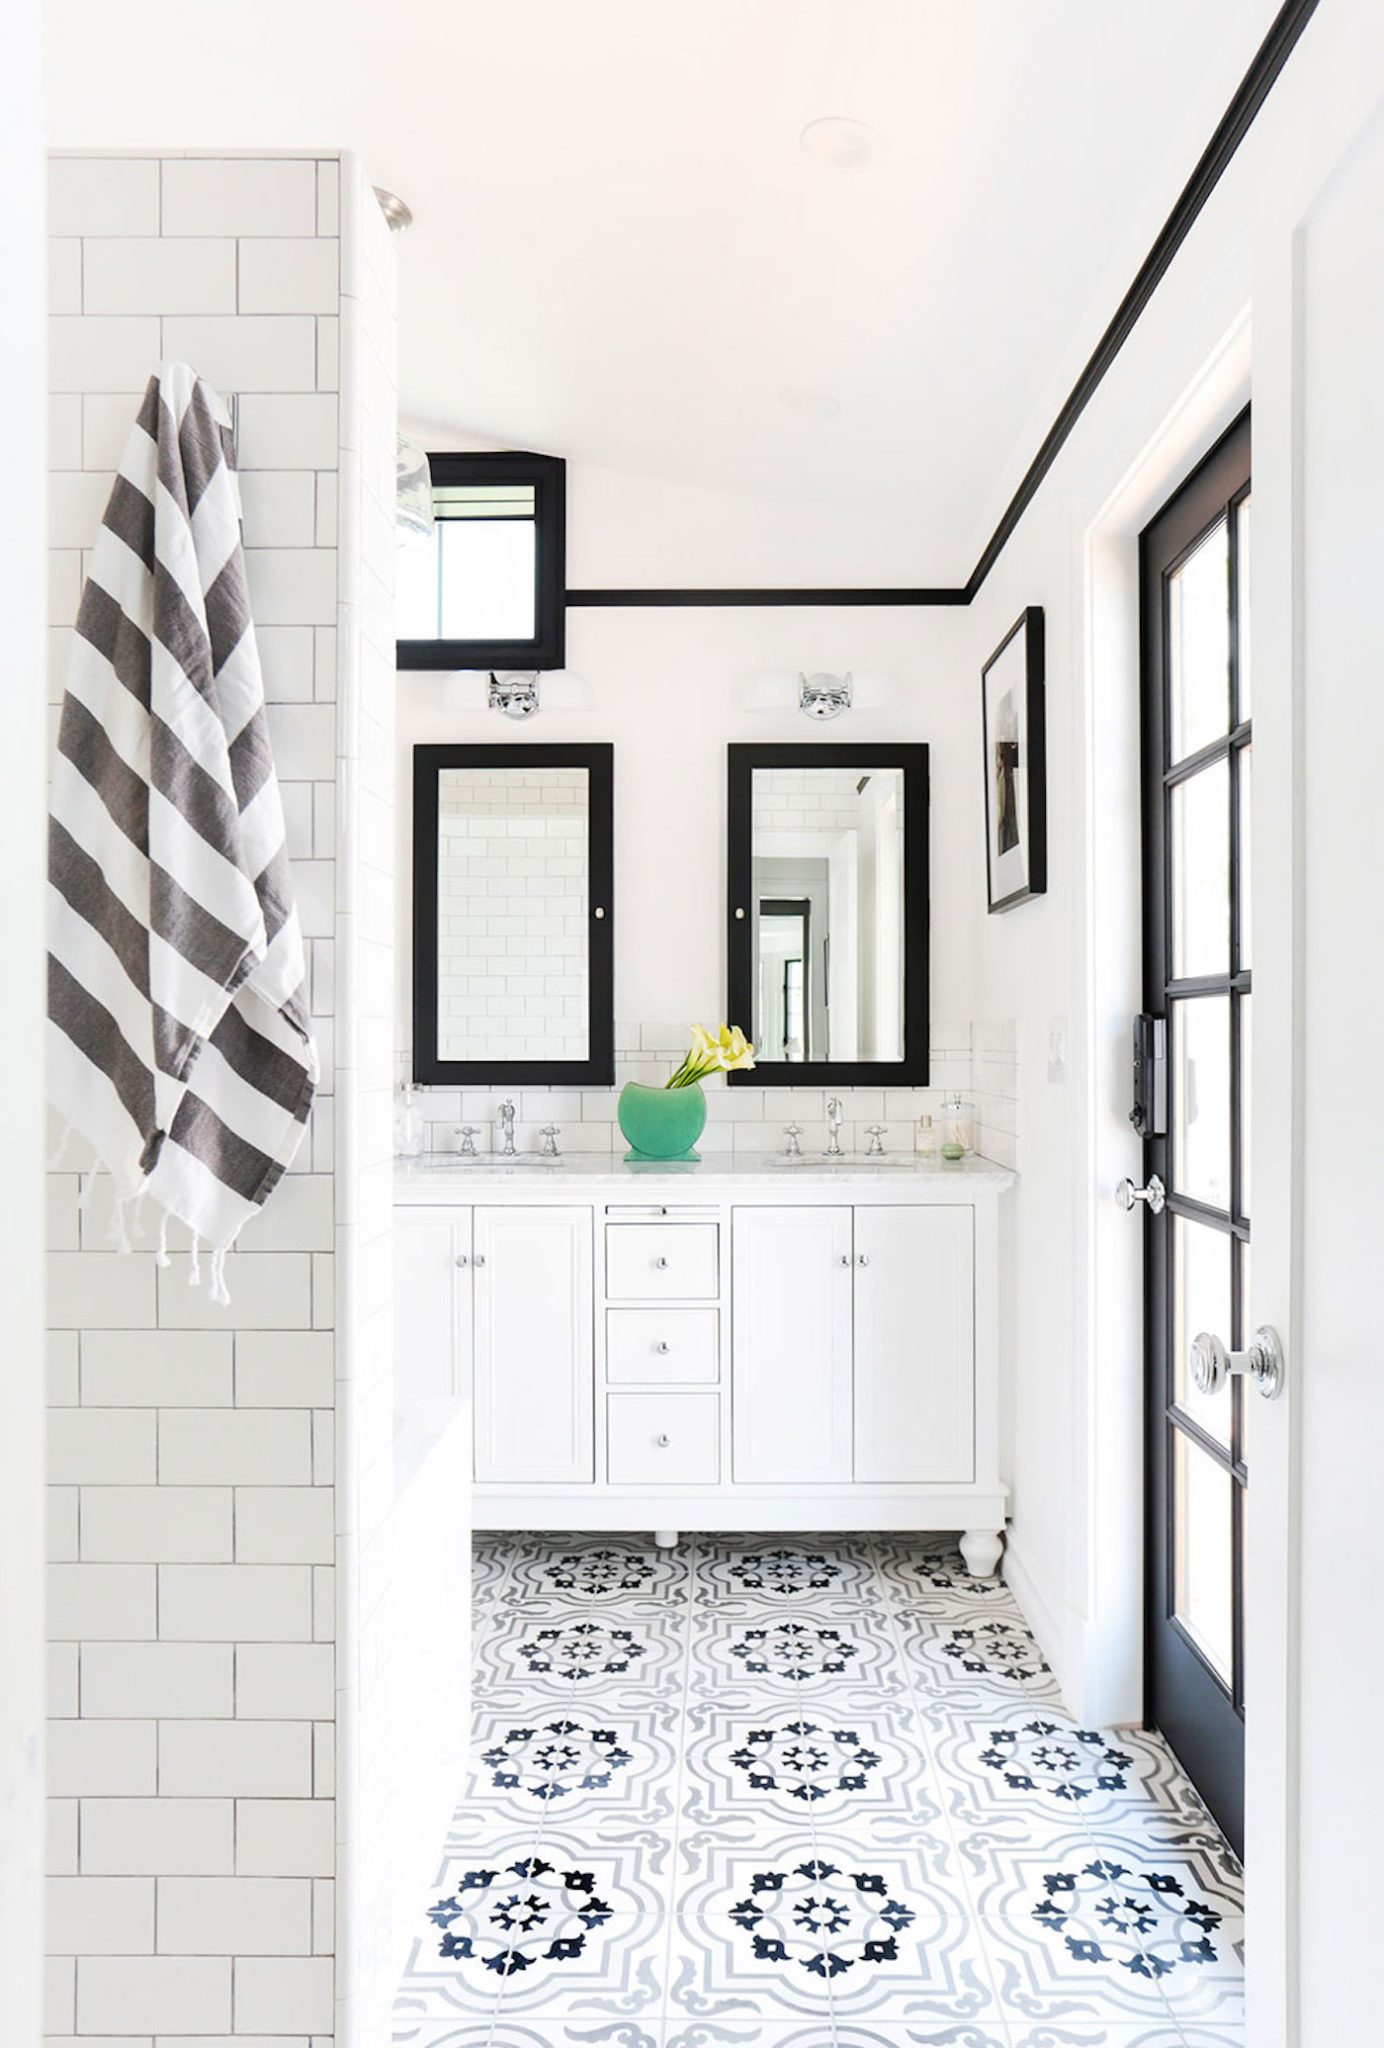 Full home renovation master bath redesign with apothecary cement tile by Stefani Stein Inc.